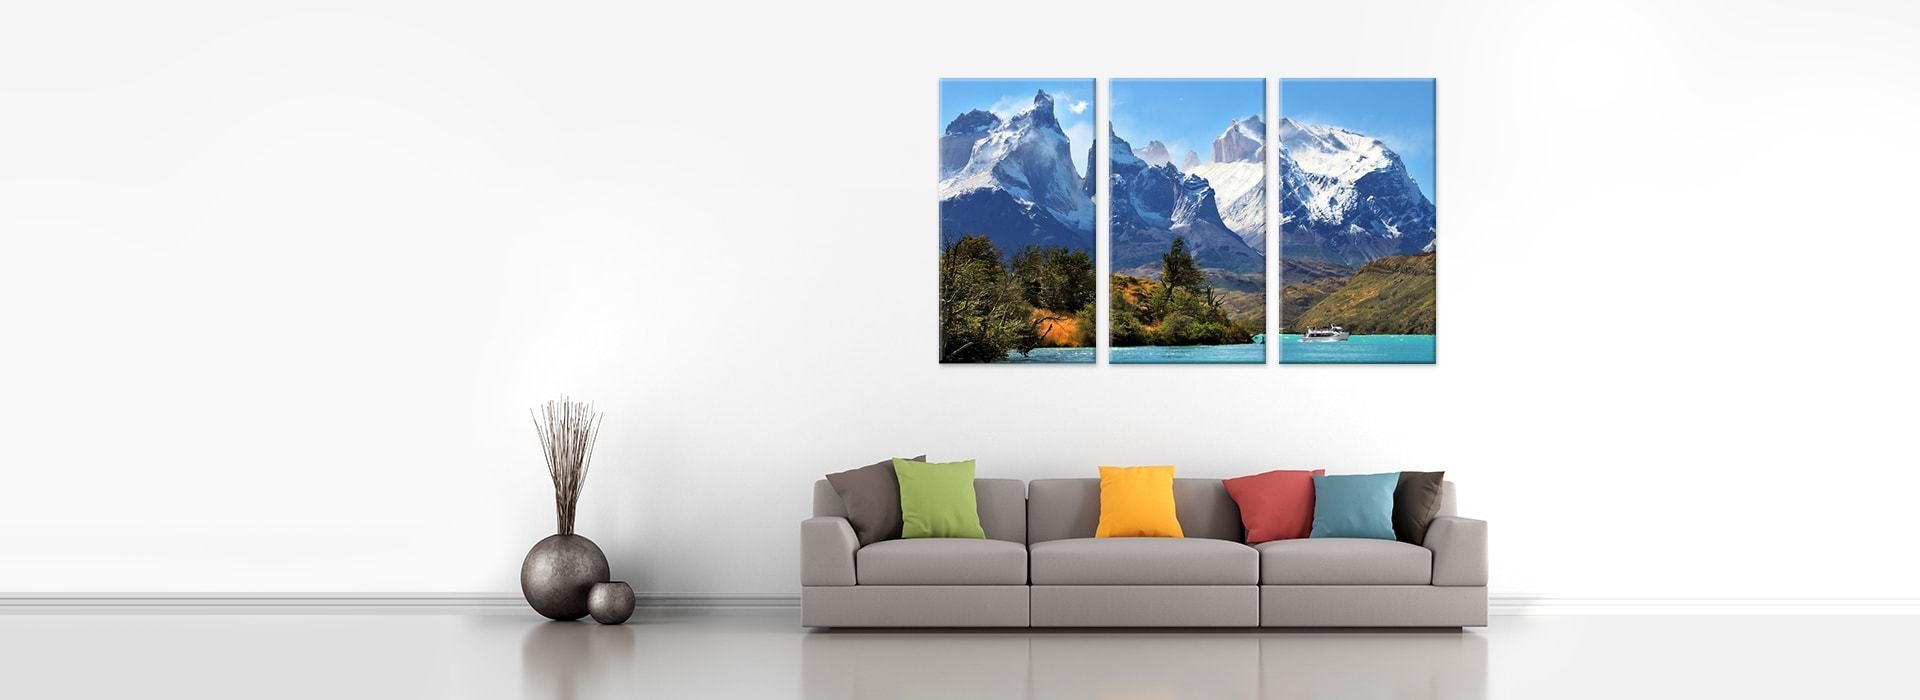 Saving Tips On Personalized Canvas Prints | Music Interprete For 2018 Canvas Wall Art In Melbourne (View 10 of 15)